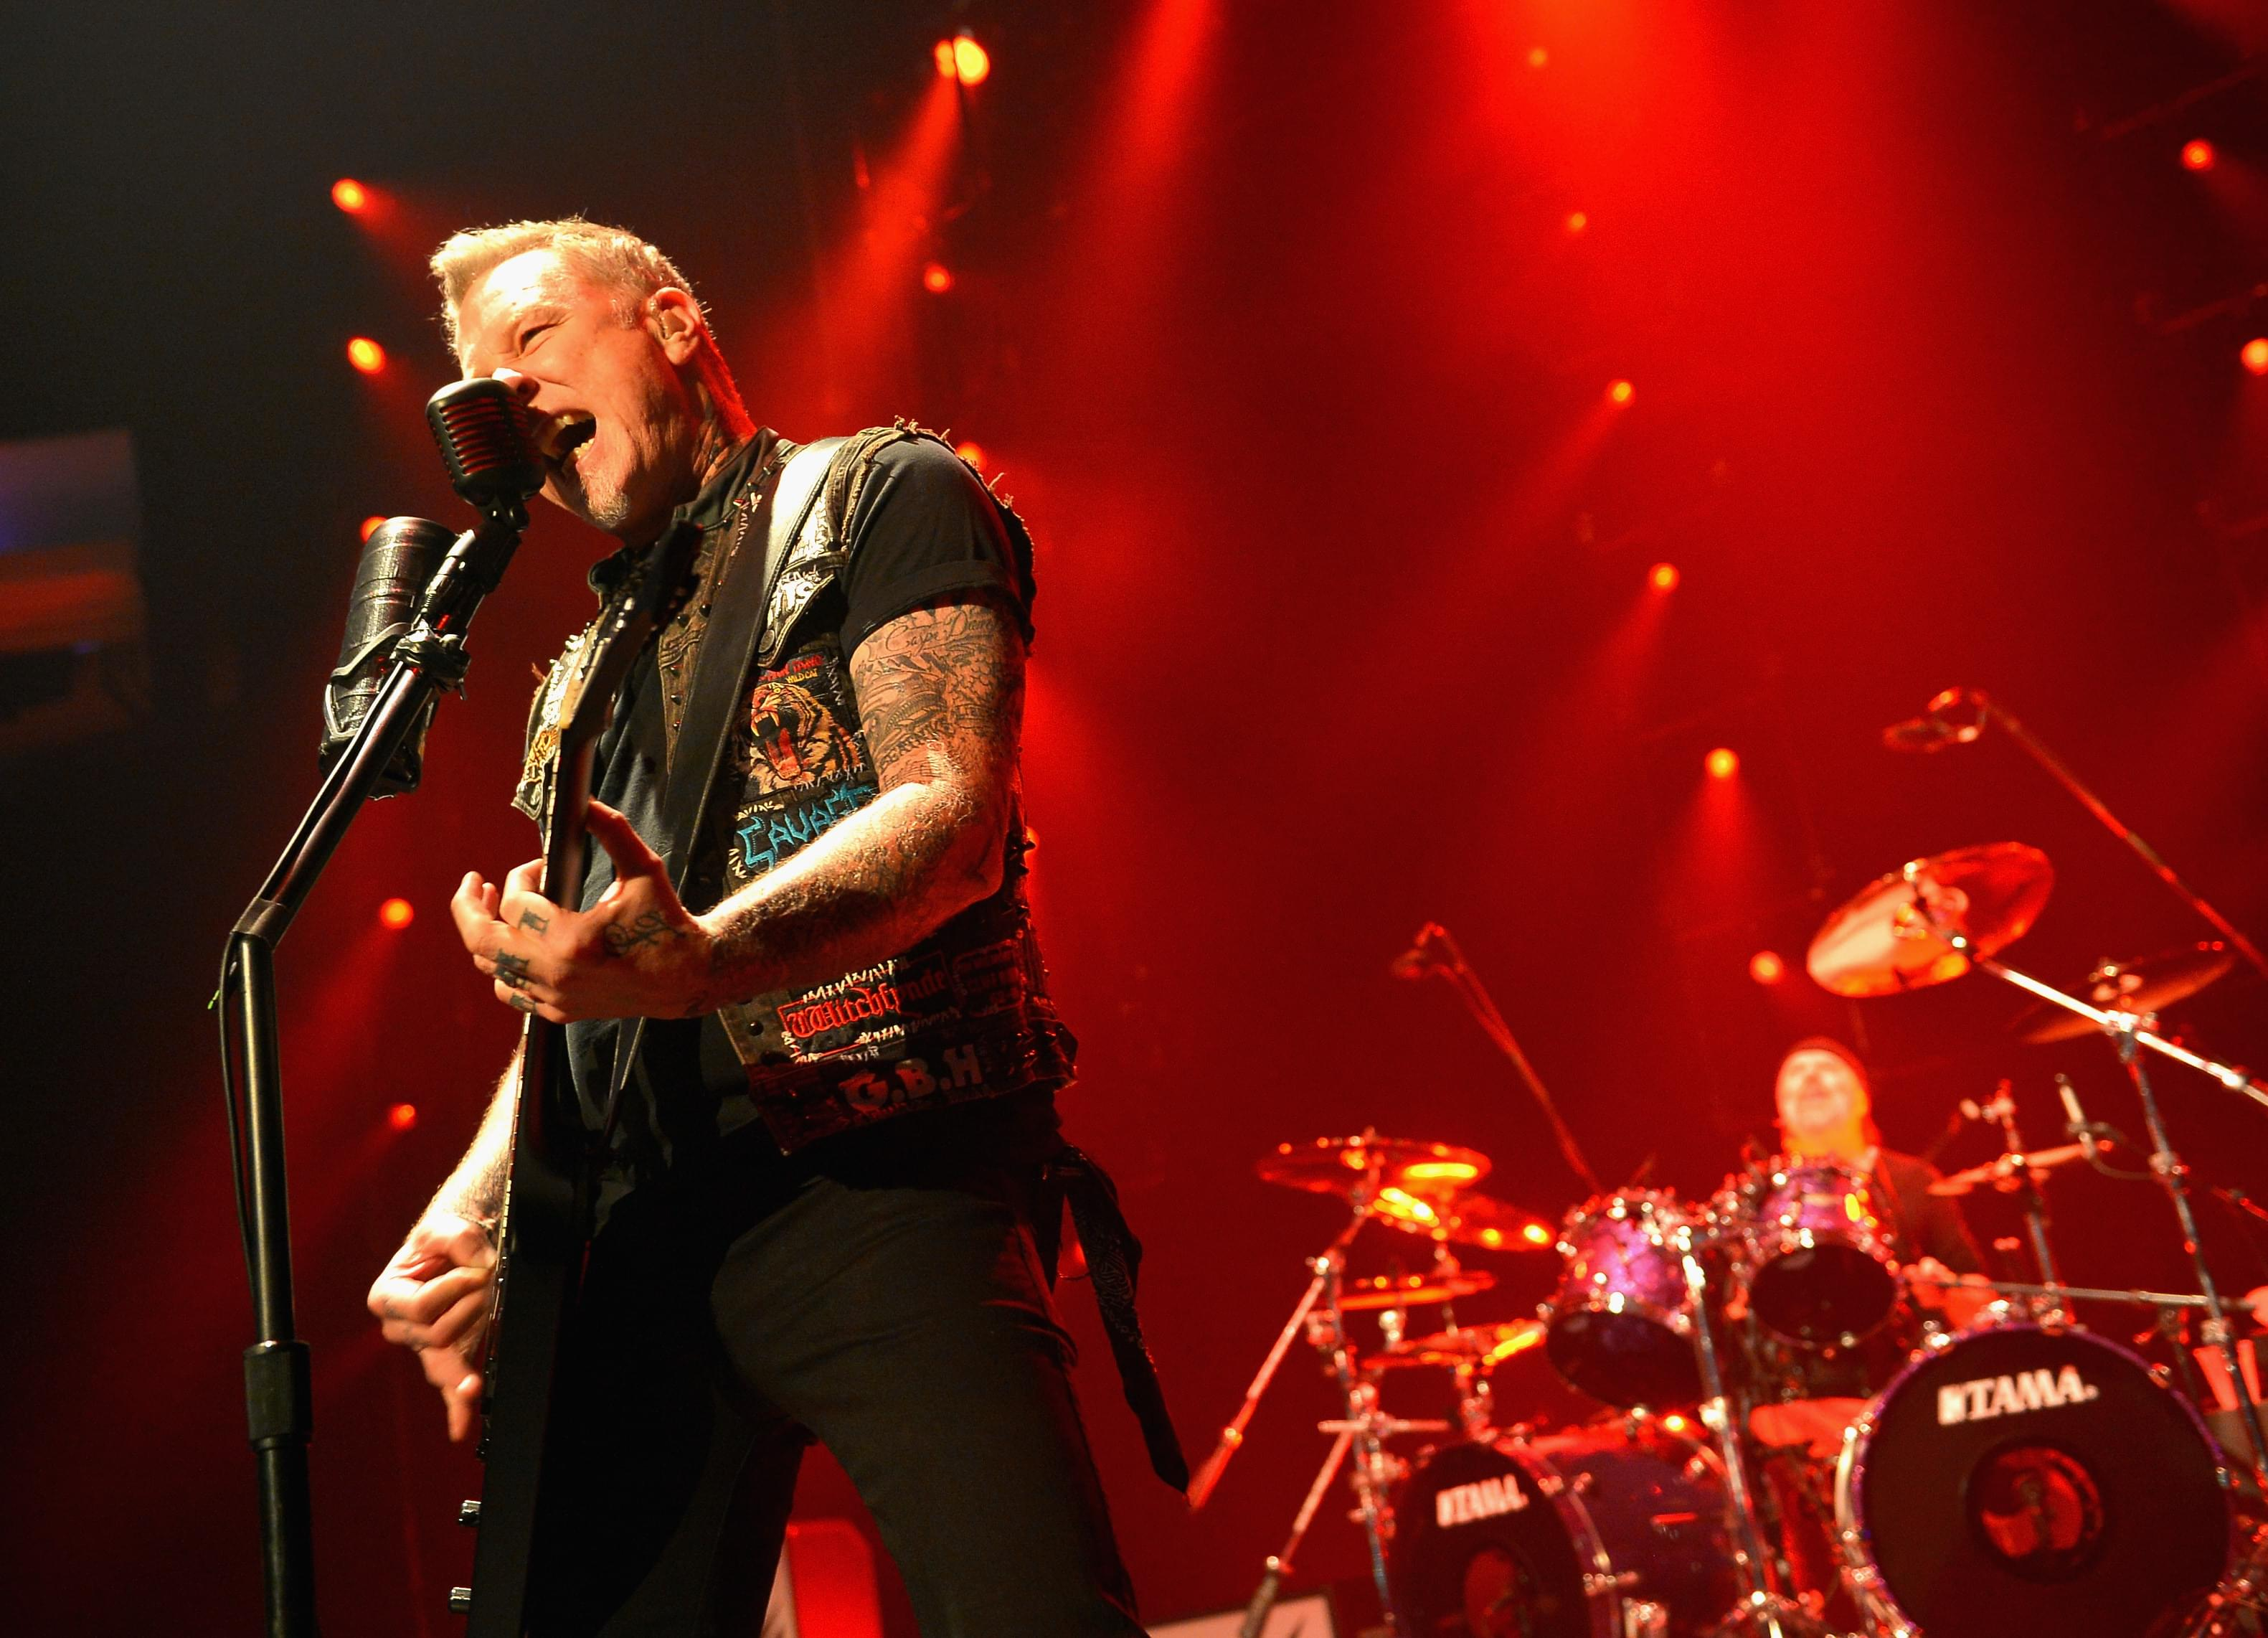 Watch Metallica Perform 'Enter Sandman' on The Late Show with Stephen Colbert [VIDEO]